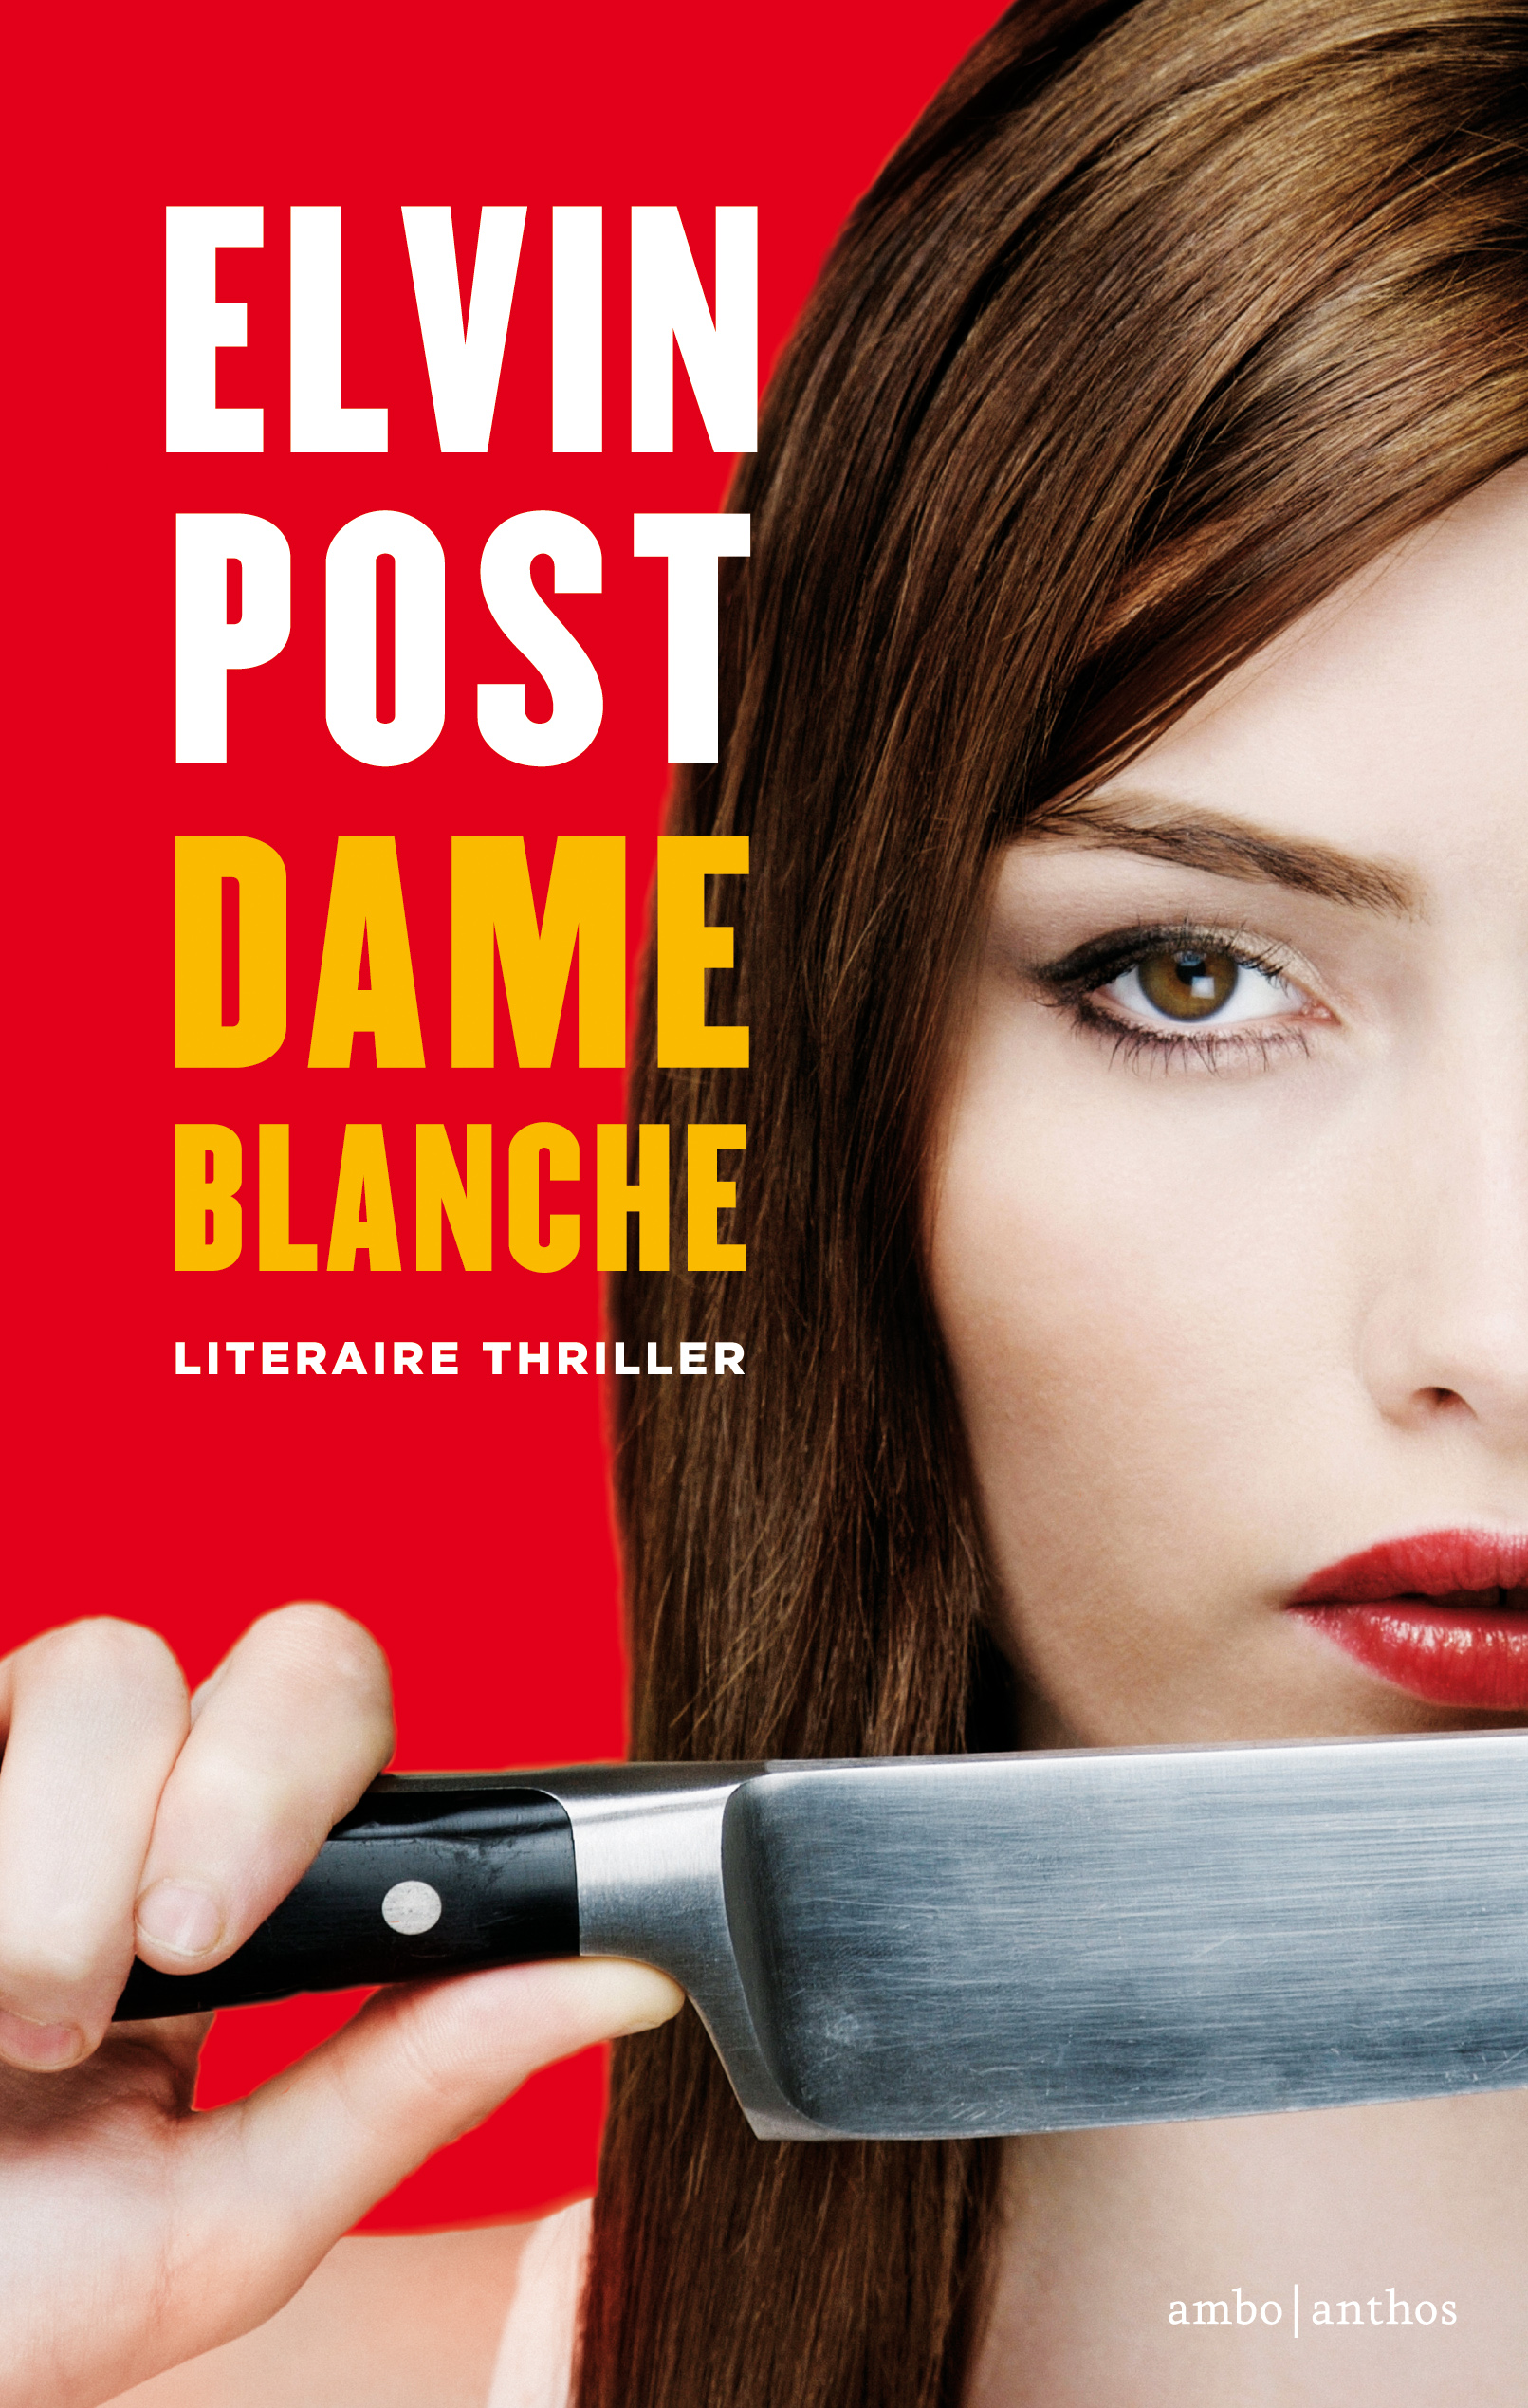 Dame blanche Elvin Post